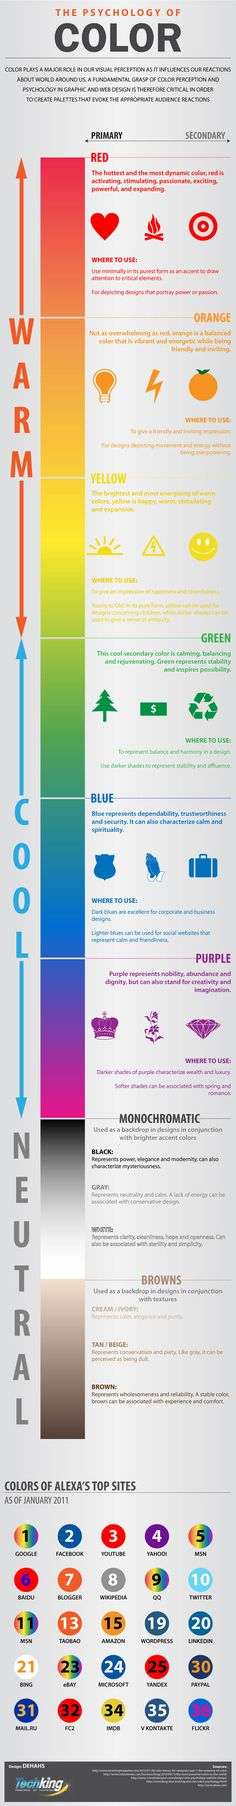 psychologie couleurs logos Infographies : 11 Guidelines pour vos projets WebDesign